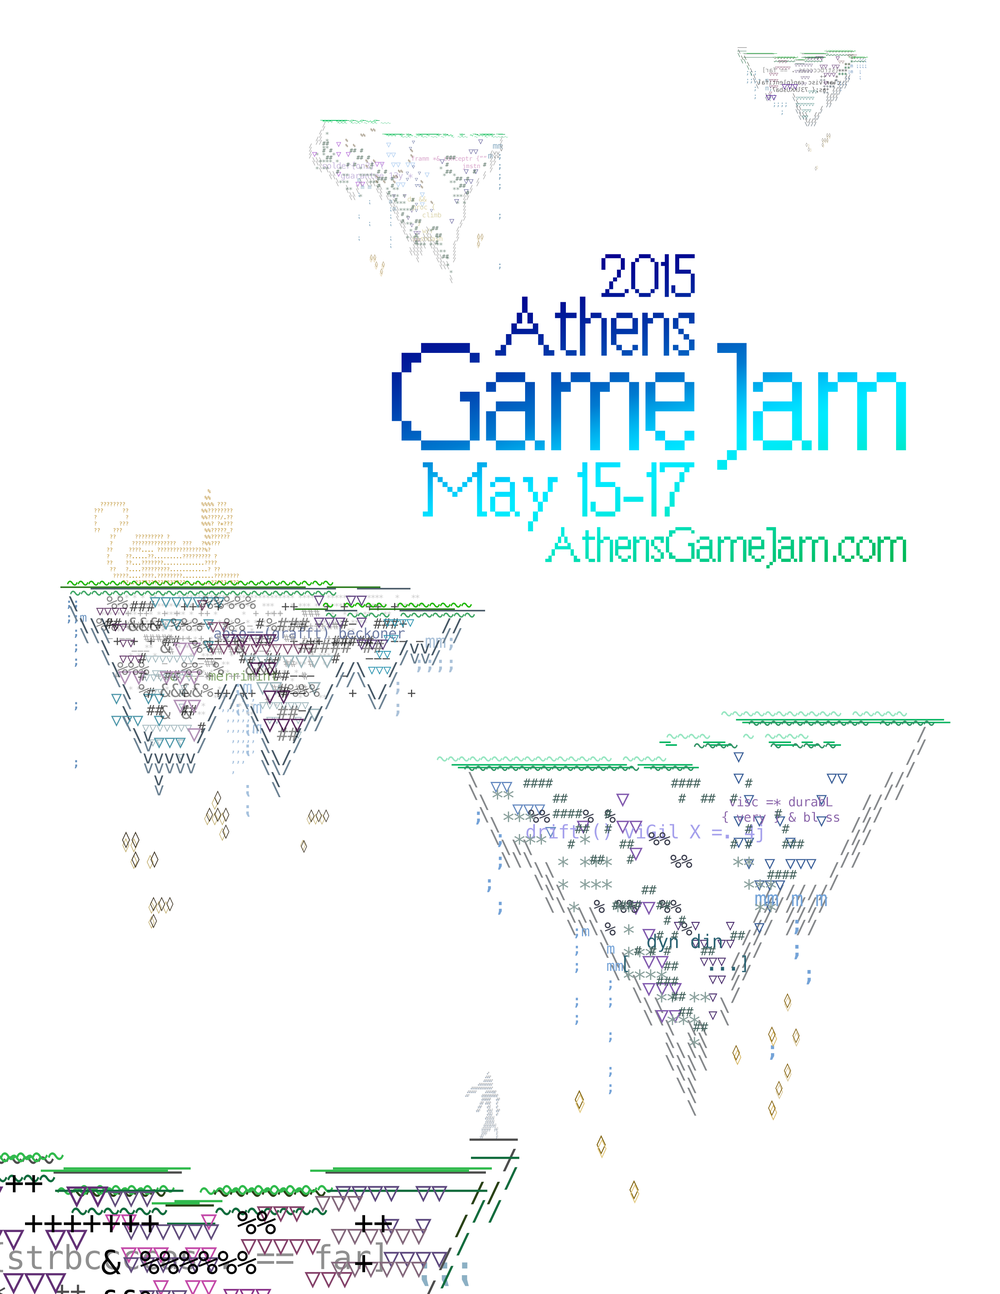 AthensGA-GameJam2015-Flyer.png